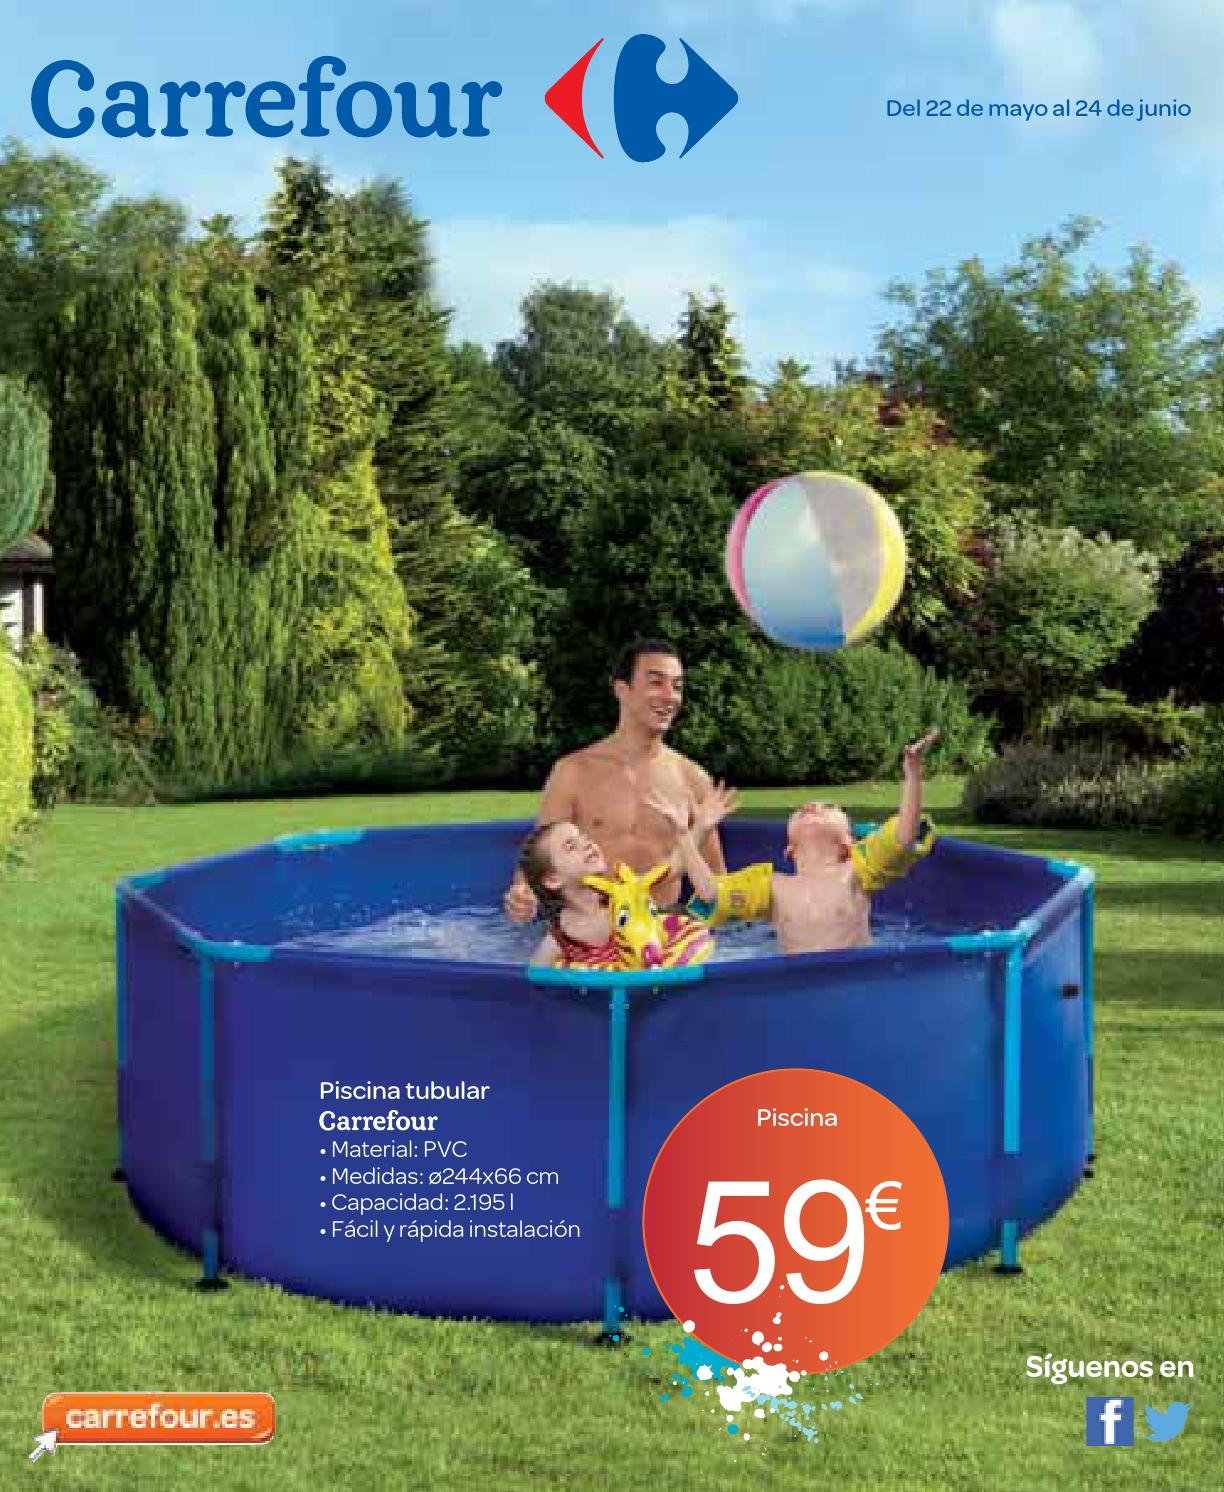 Piscina desmontable en carrefour for Piscinas de plastico precios carrefour